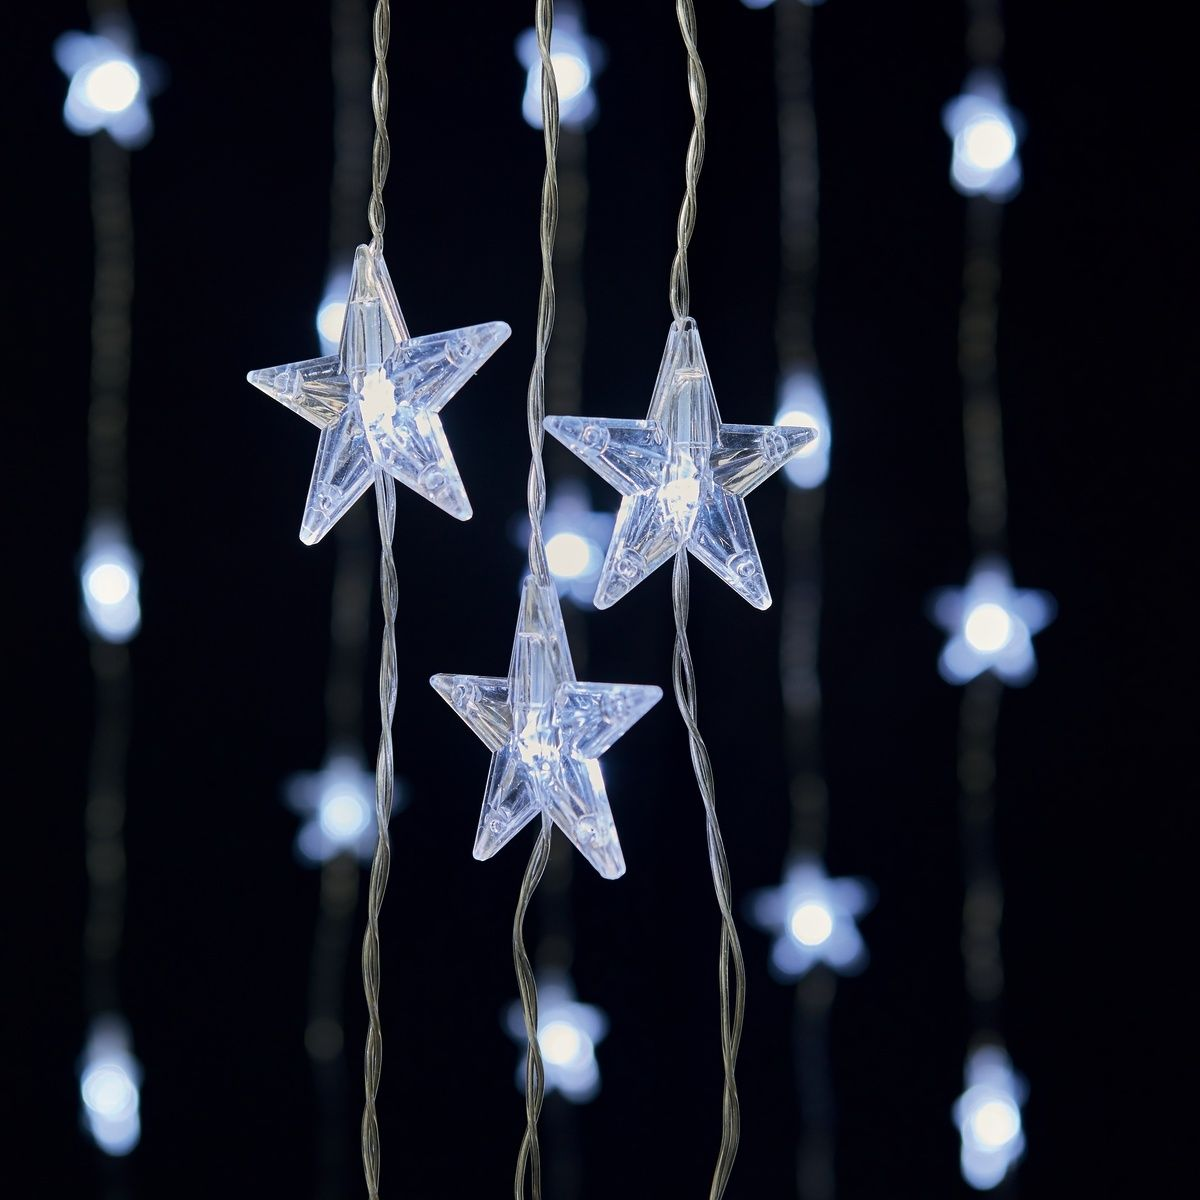 Low Voltage Star Curtain Lights Kmart Christmas Tree